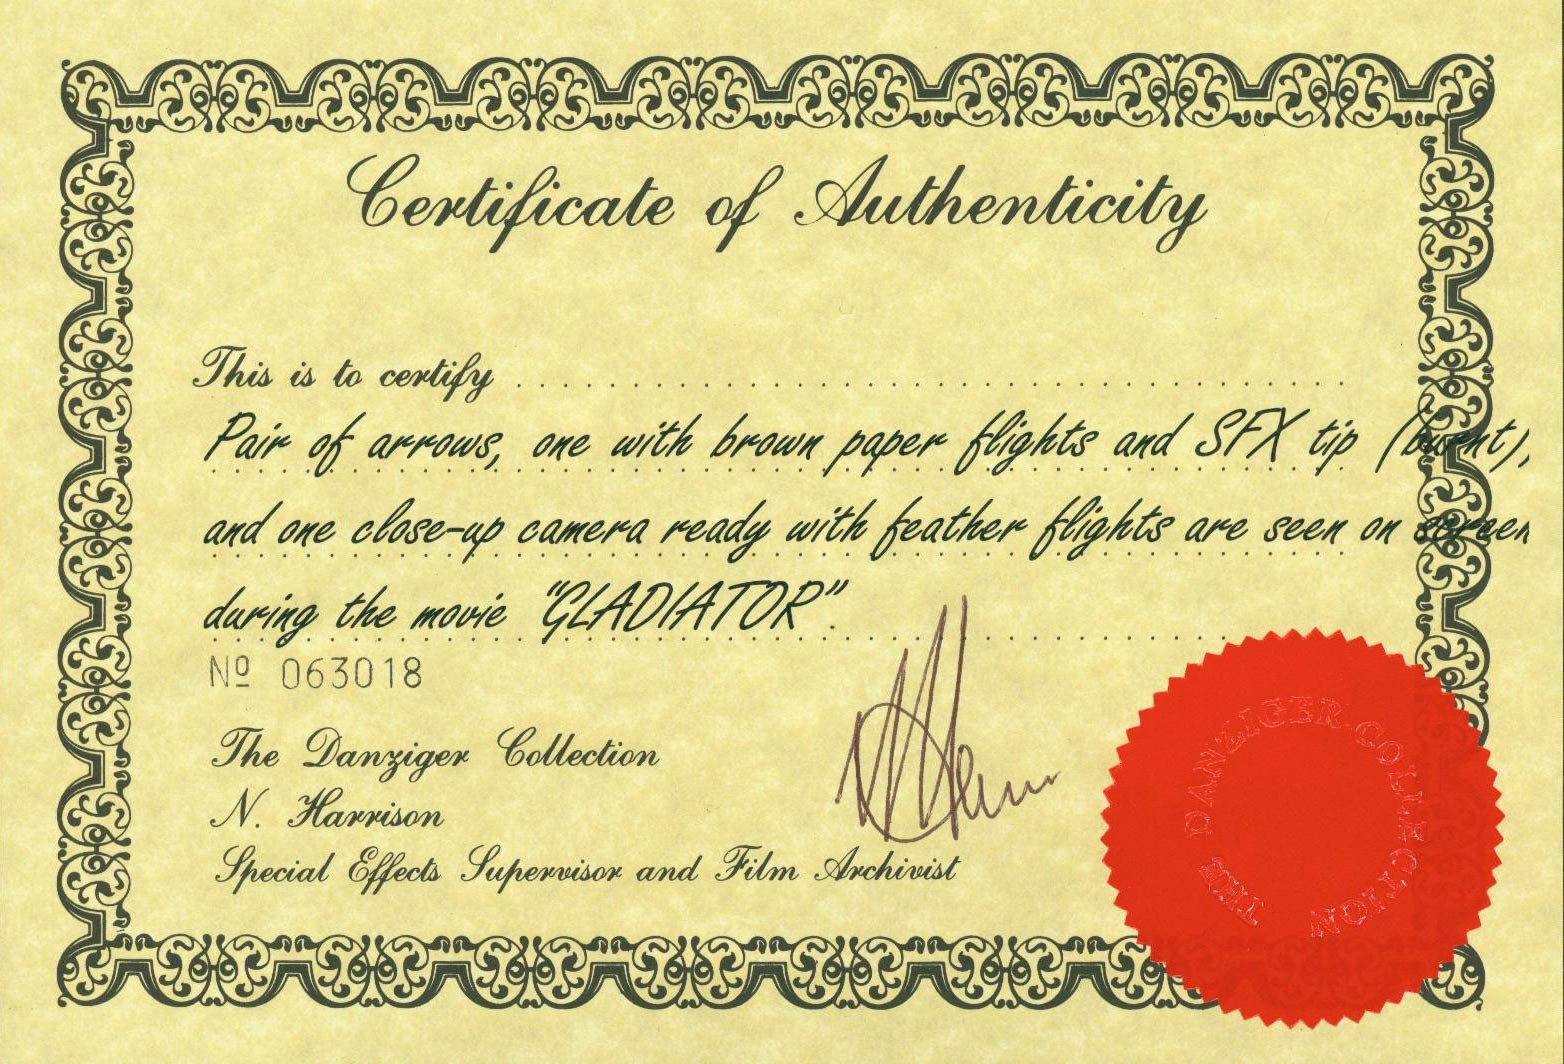 Fake Certificate Of Authenticity Beautiful Elstree Props Fertility Idols Light Gods Danziger